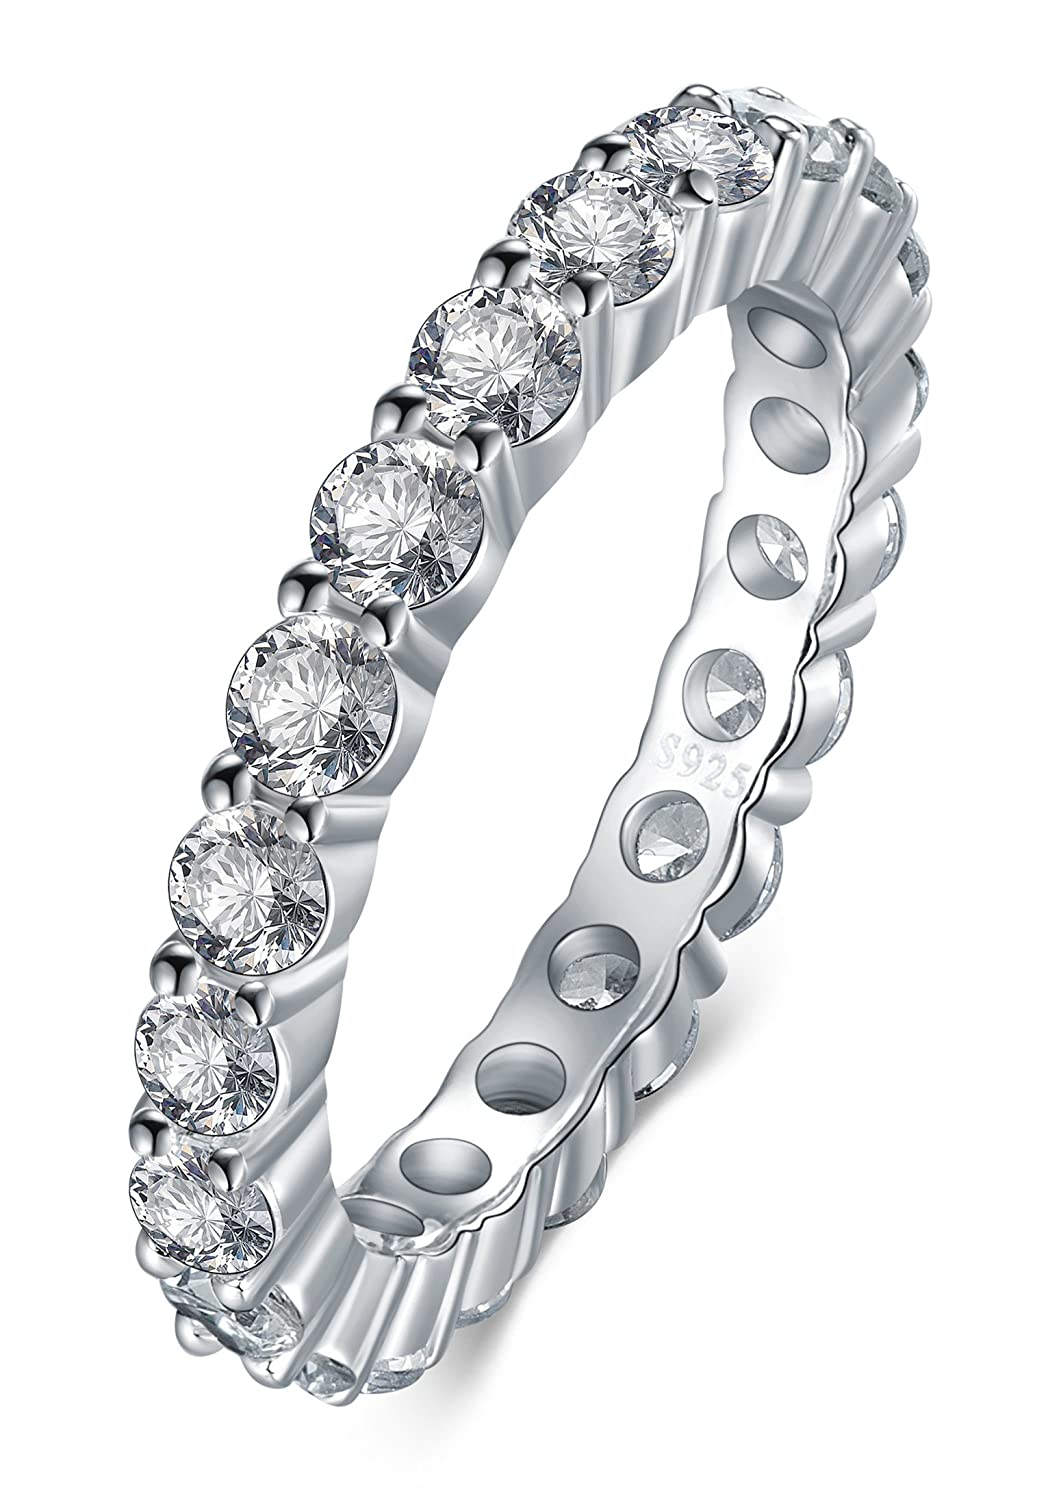 BORUO 925 Sterling Silver Ring, 2mm Cubic Zirconia CZ Eternity Engagement Wedding Band Stackable Ring BRC Creative Corp.